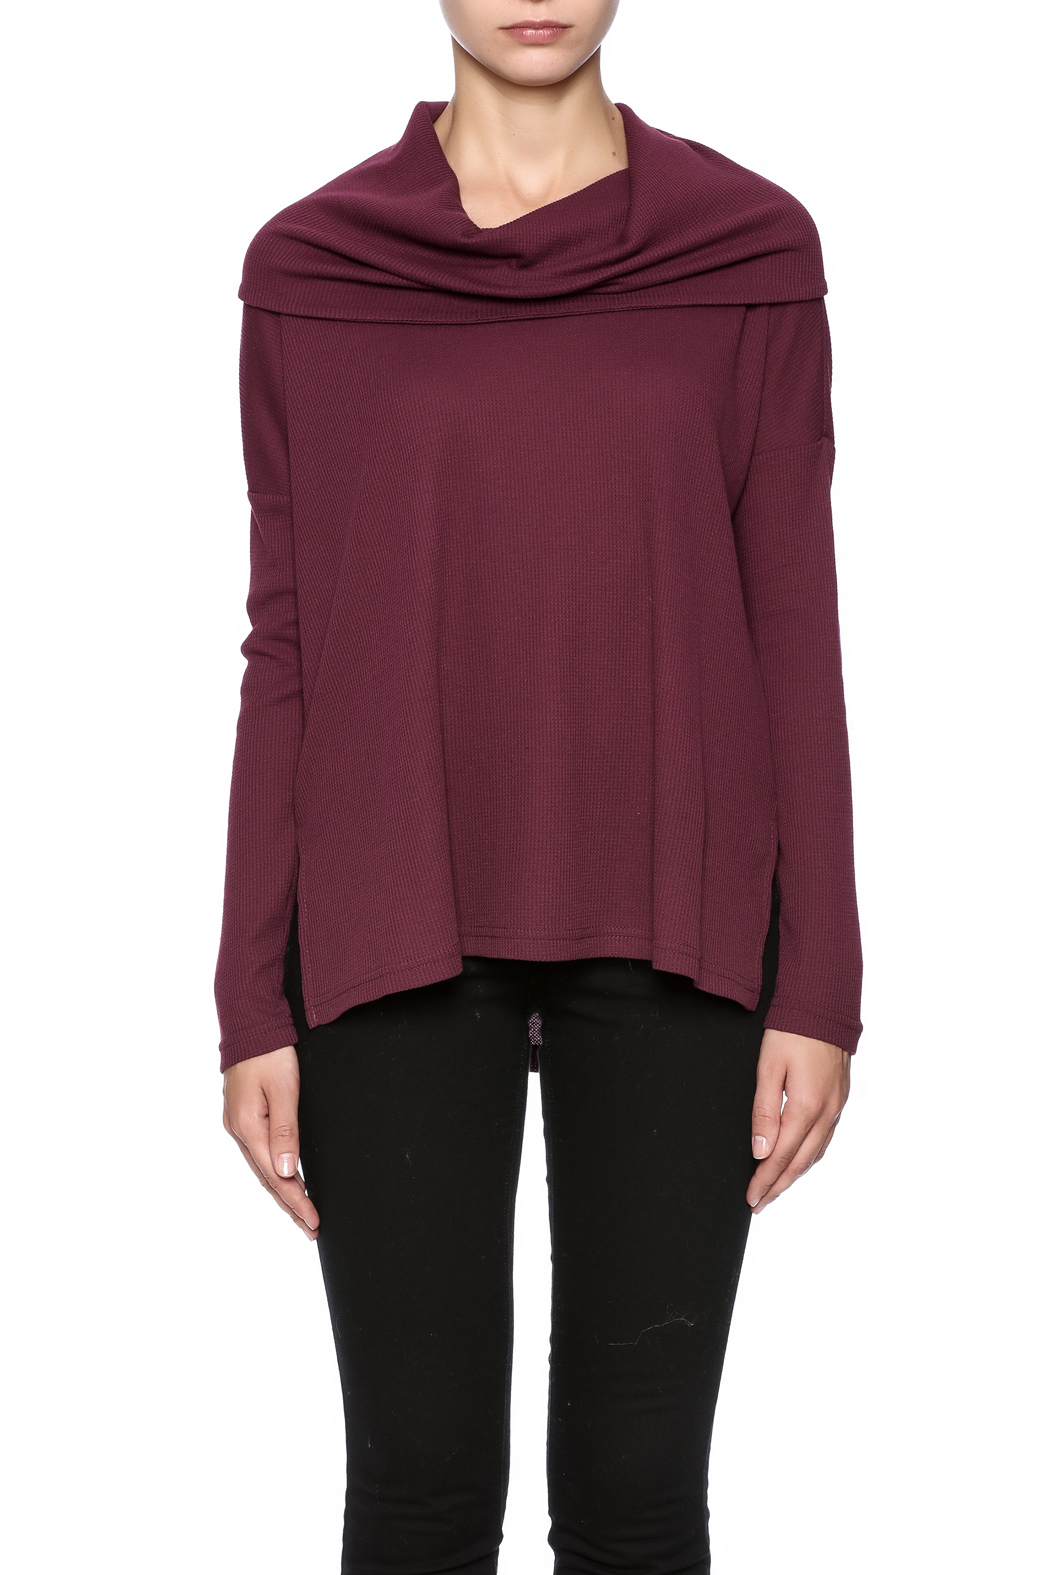 Jack by BB Dakota Cowl Neck Top from Colorado by Opal Boutique ...